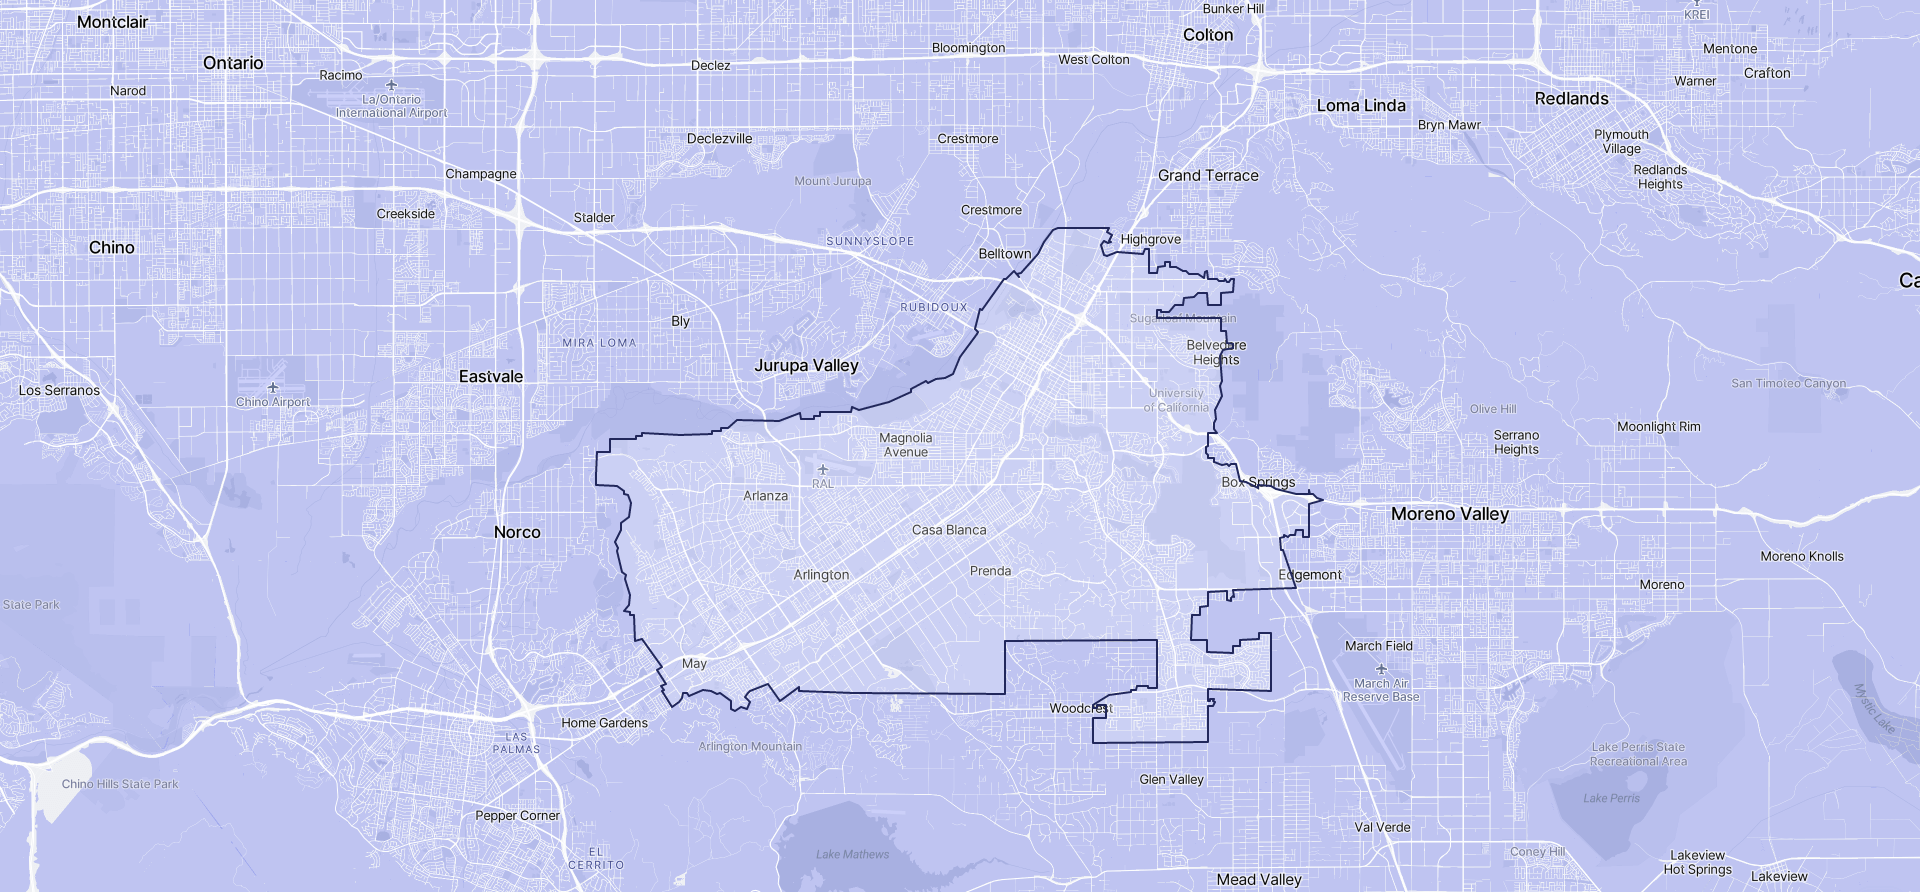 Image of Riverside boundaries on a map.